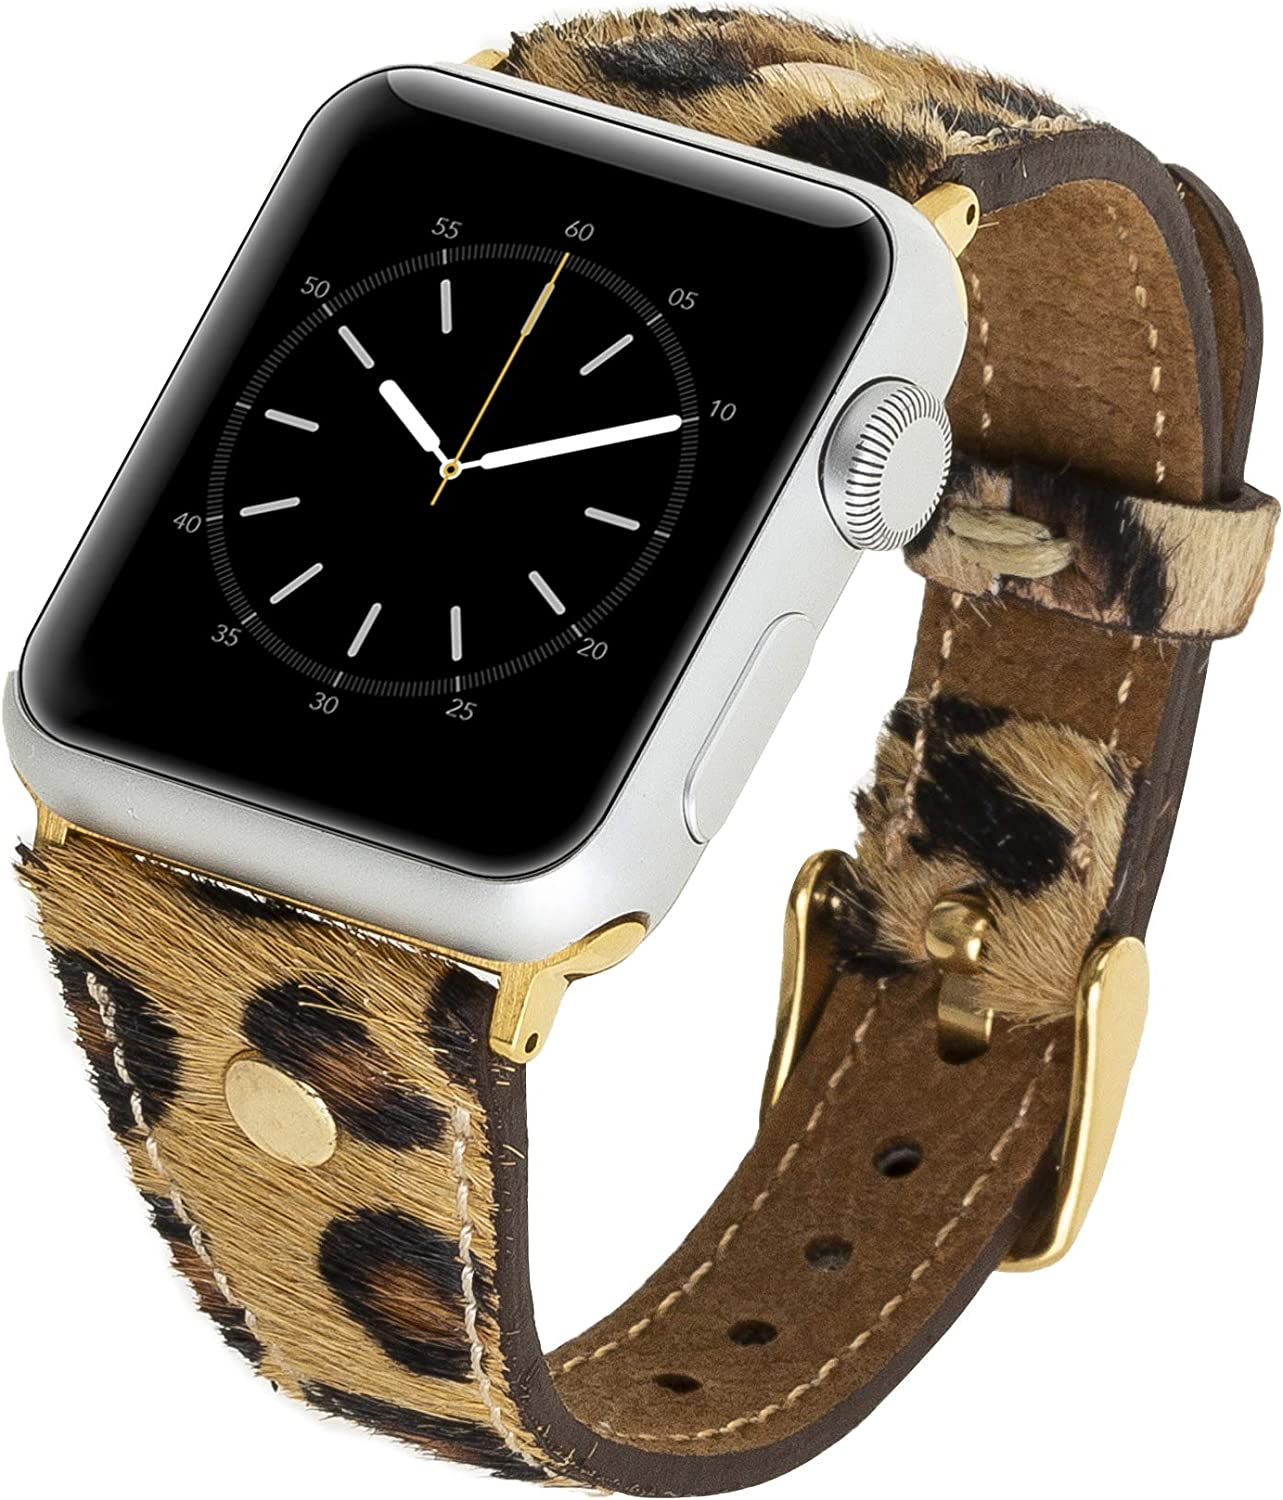 Venito Sessa Premium Slim Leather Watch Band w/Gold Stud Compatible with The Newest Apple Watch iwatch Series 6 as Well as Series 1,2,3,4,5 (Furry Leopard w/Gold Stainless Steel Hardware, 38mm-40mm)